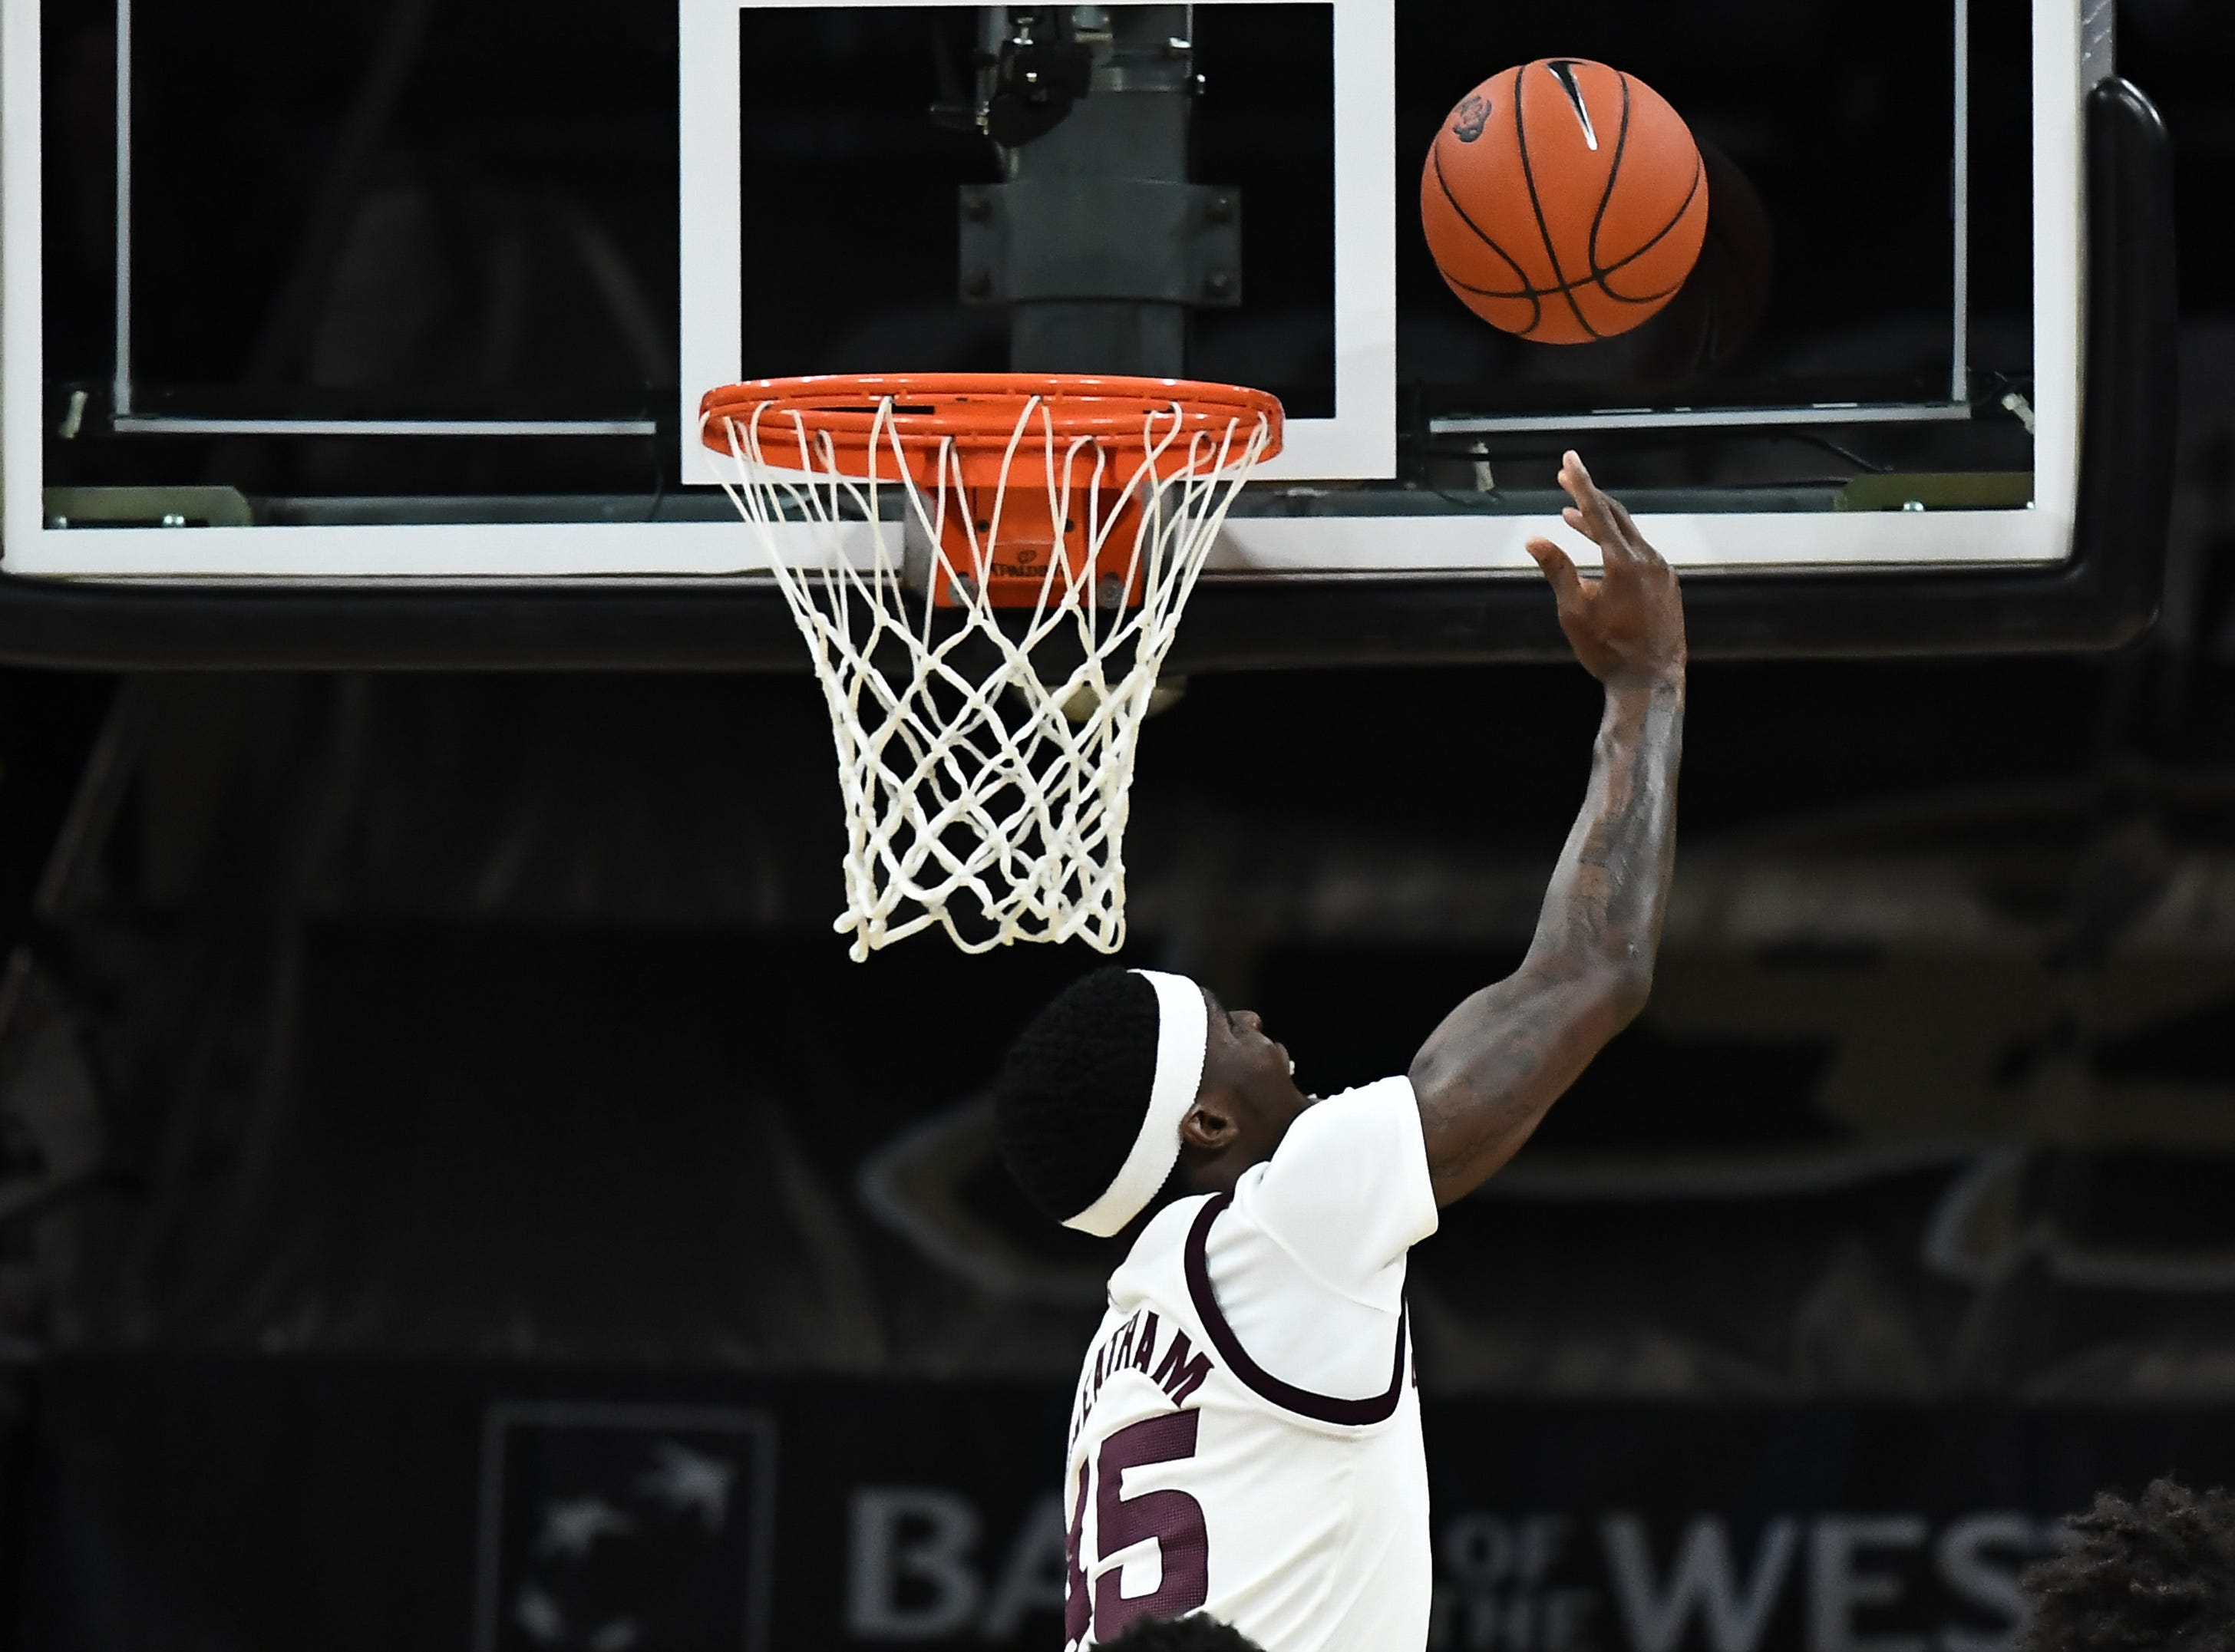 Feb 13, 2019; Boulder, CO, USA; Arizona State Sun Devils forward Zylan Cheatham (45) shoots in the first half against the Colorado Buffaloes at the CU Events Center. Mandatory Credit: Ron Chenoy-USA TODAY Sports